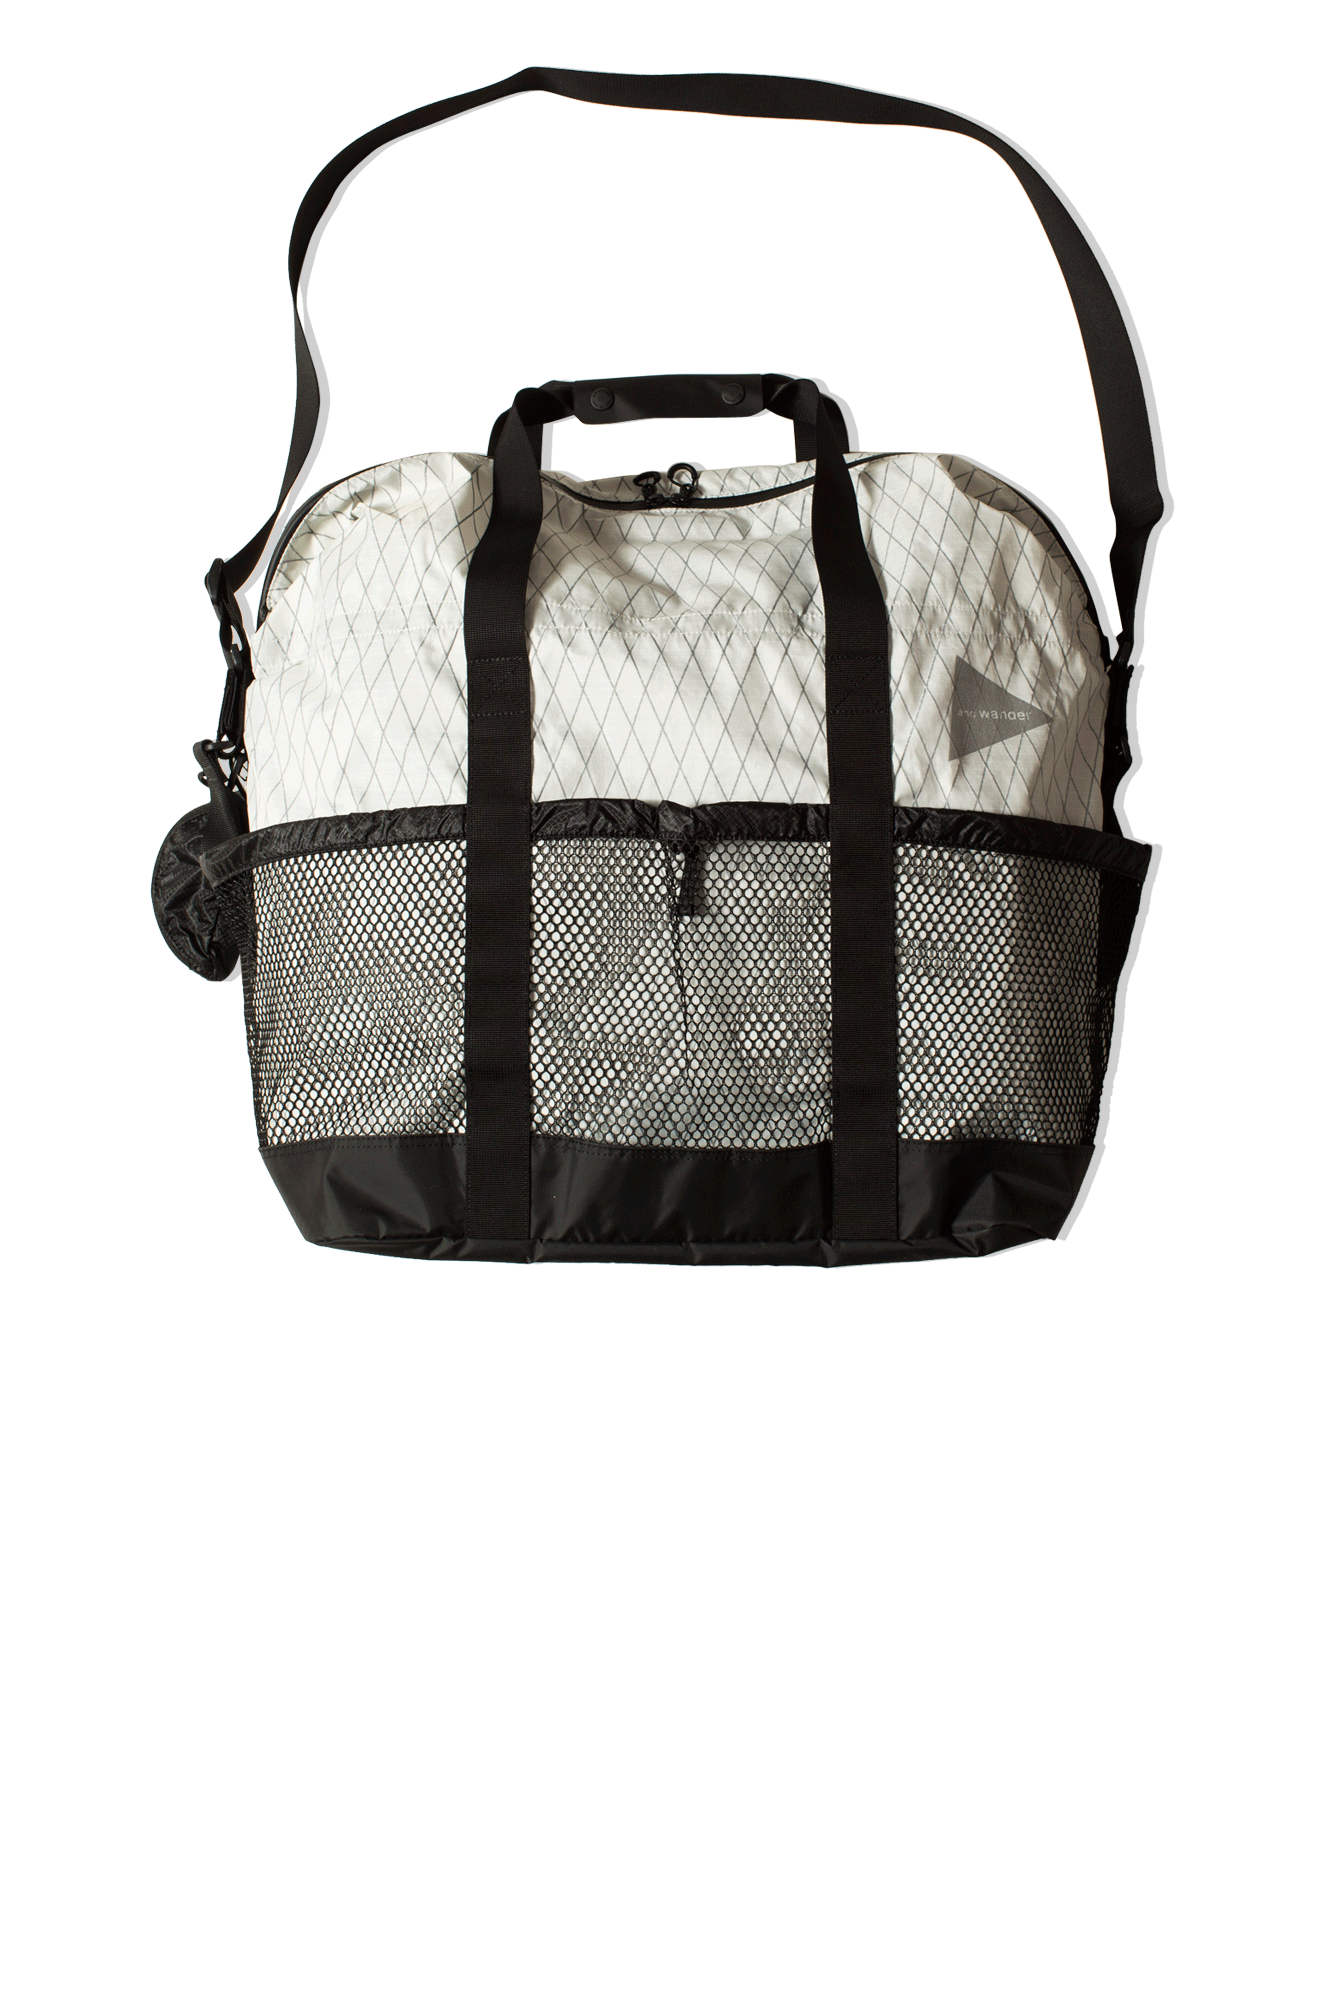 X-Pac 45L Tote Bag White